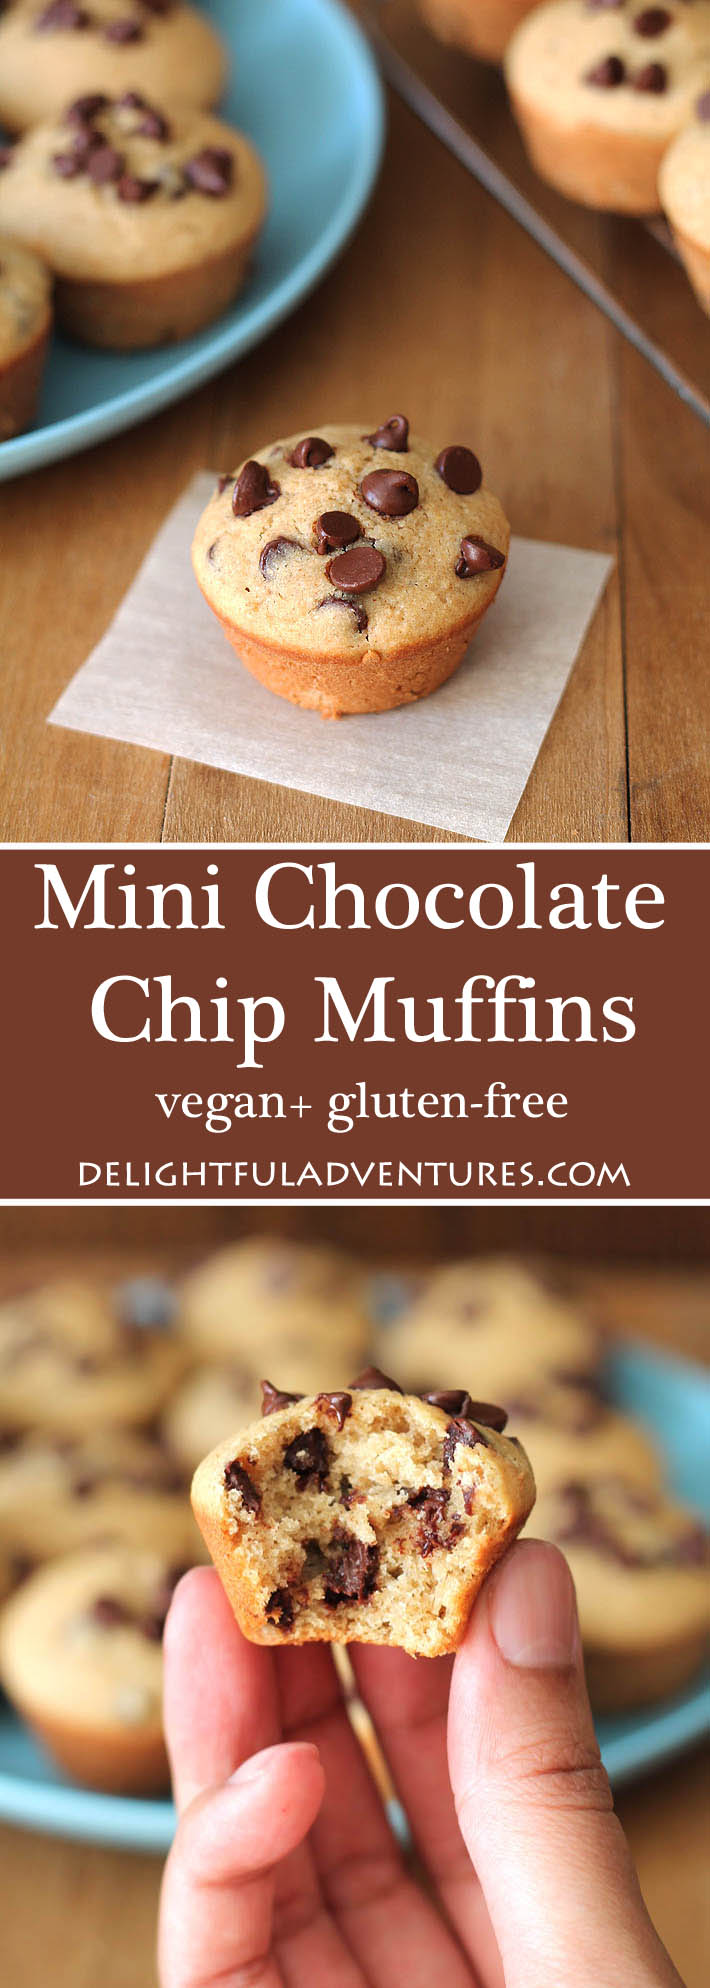 An easy recipe for gluten-free vegan Mini Chocolate Chip Muffins that you can have ready in just under 30 minutes! They're perfect for lunch box snacks and after school snacks. #veganmuffins #glutenfreemuffins #veganglutenfree #glutenfreevegan